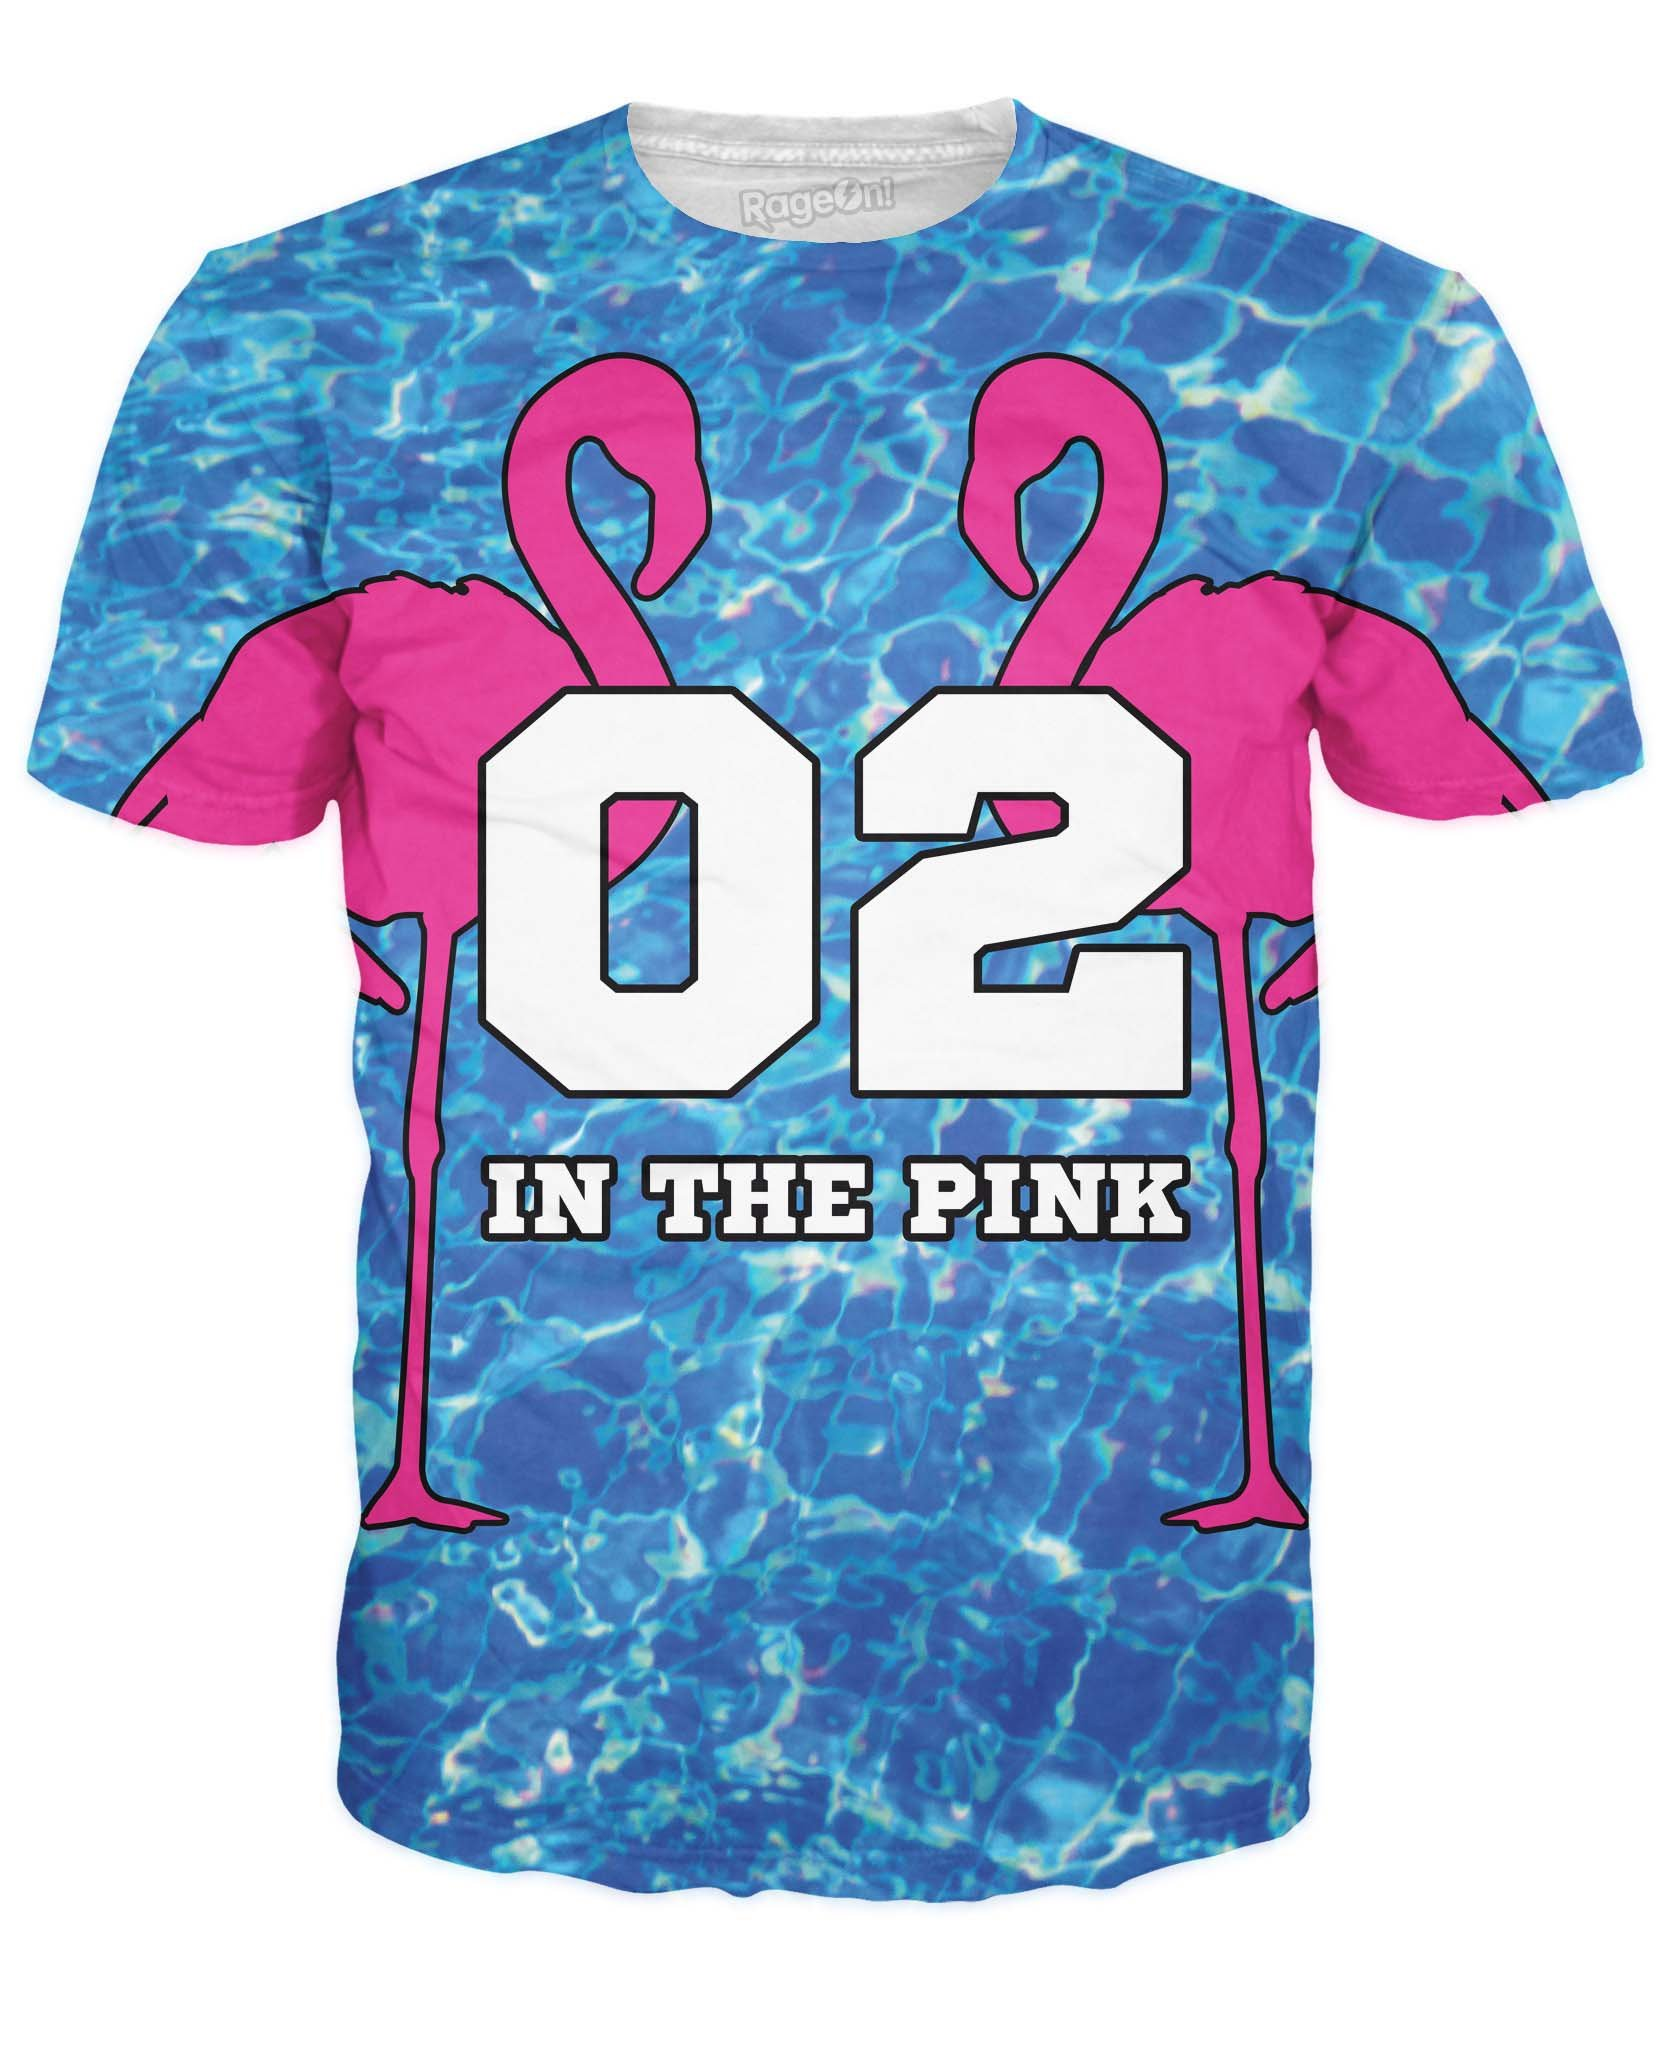 RageOn Men's 02 In The Pink T-Shirt